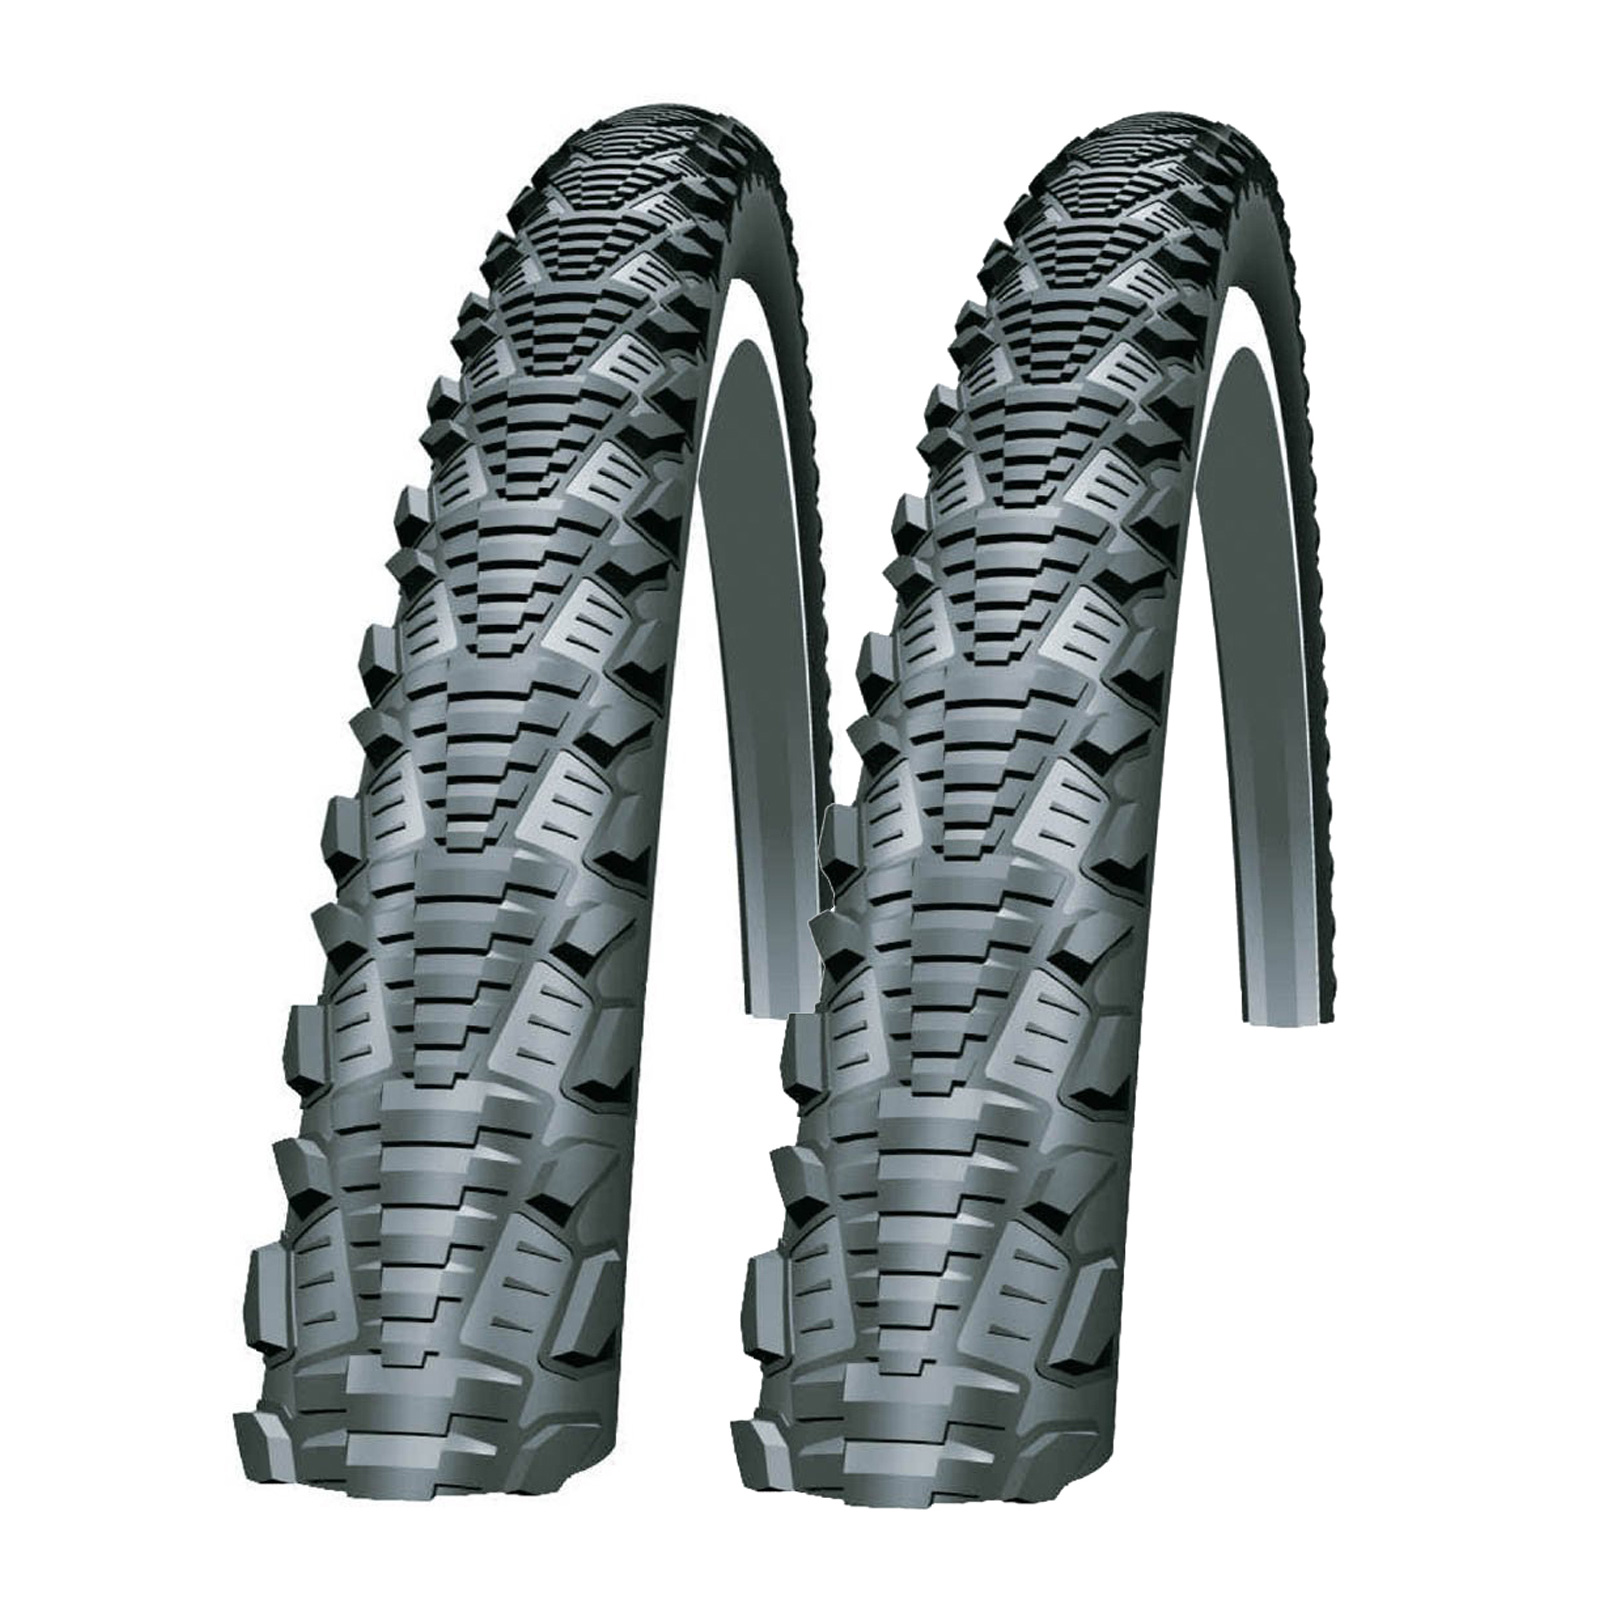 2X Schwalbe Cx Comp 700 X 35C Wired Cyclocross Bike Bicycle Tyres (1 Pair)